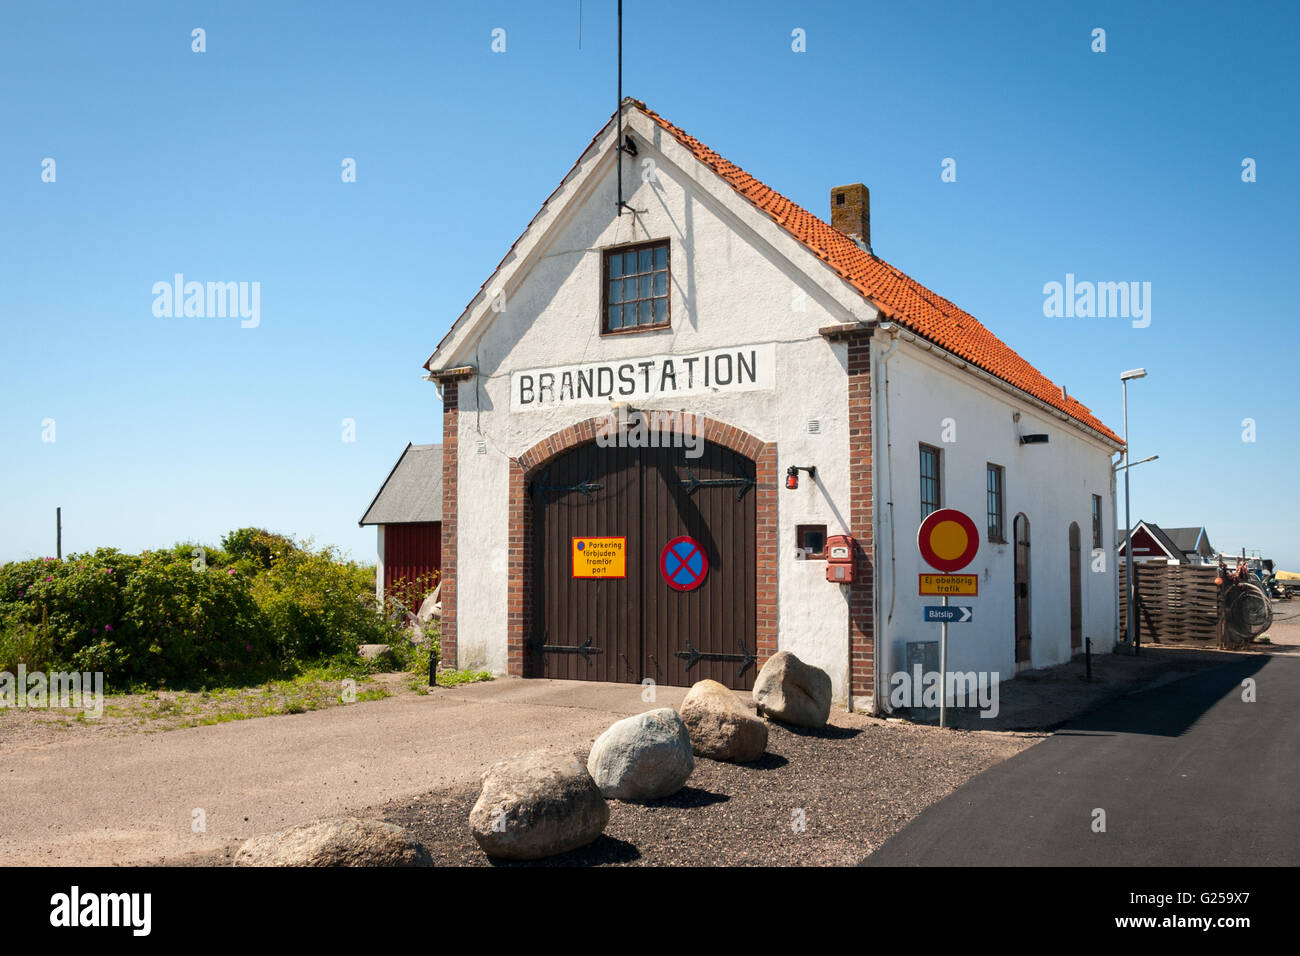 A view of the old fire station (brandstation) building at the port in Mölle, Sweden. - Stock Image